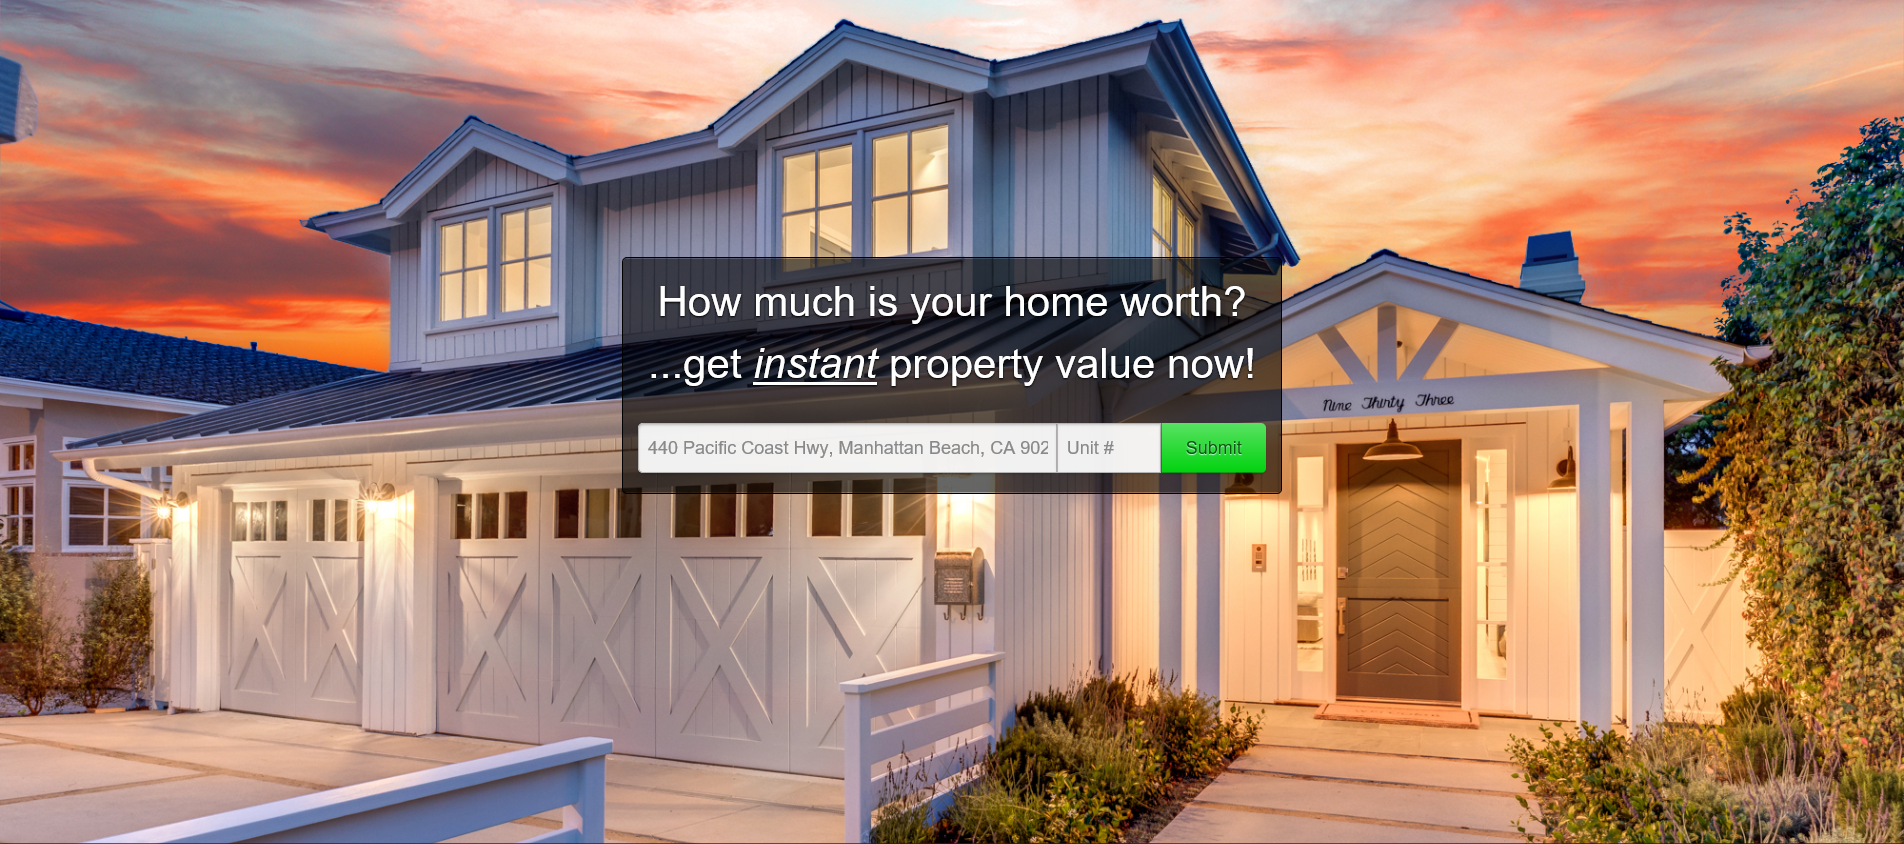 Redondo Beach Home Value